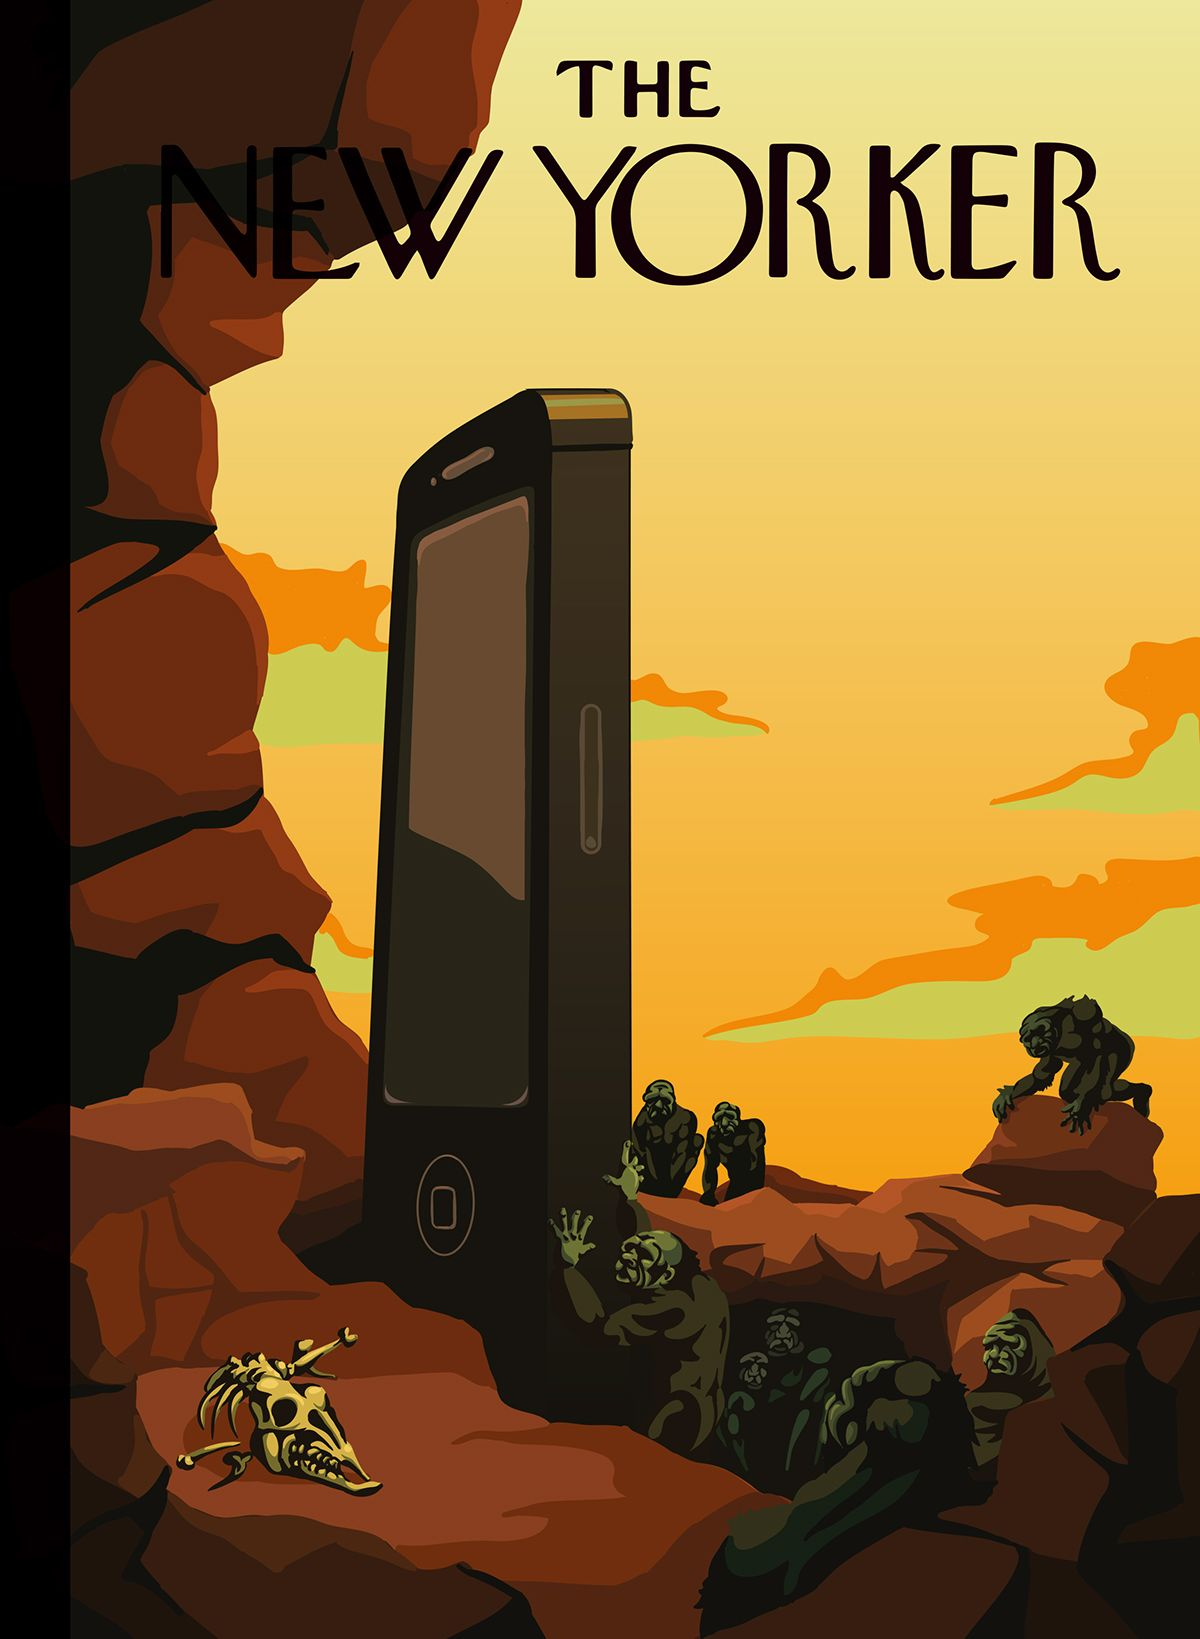 New yorker personals